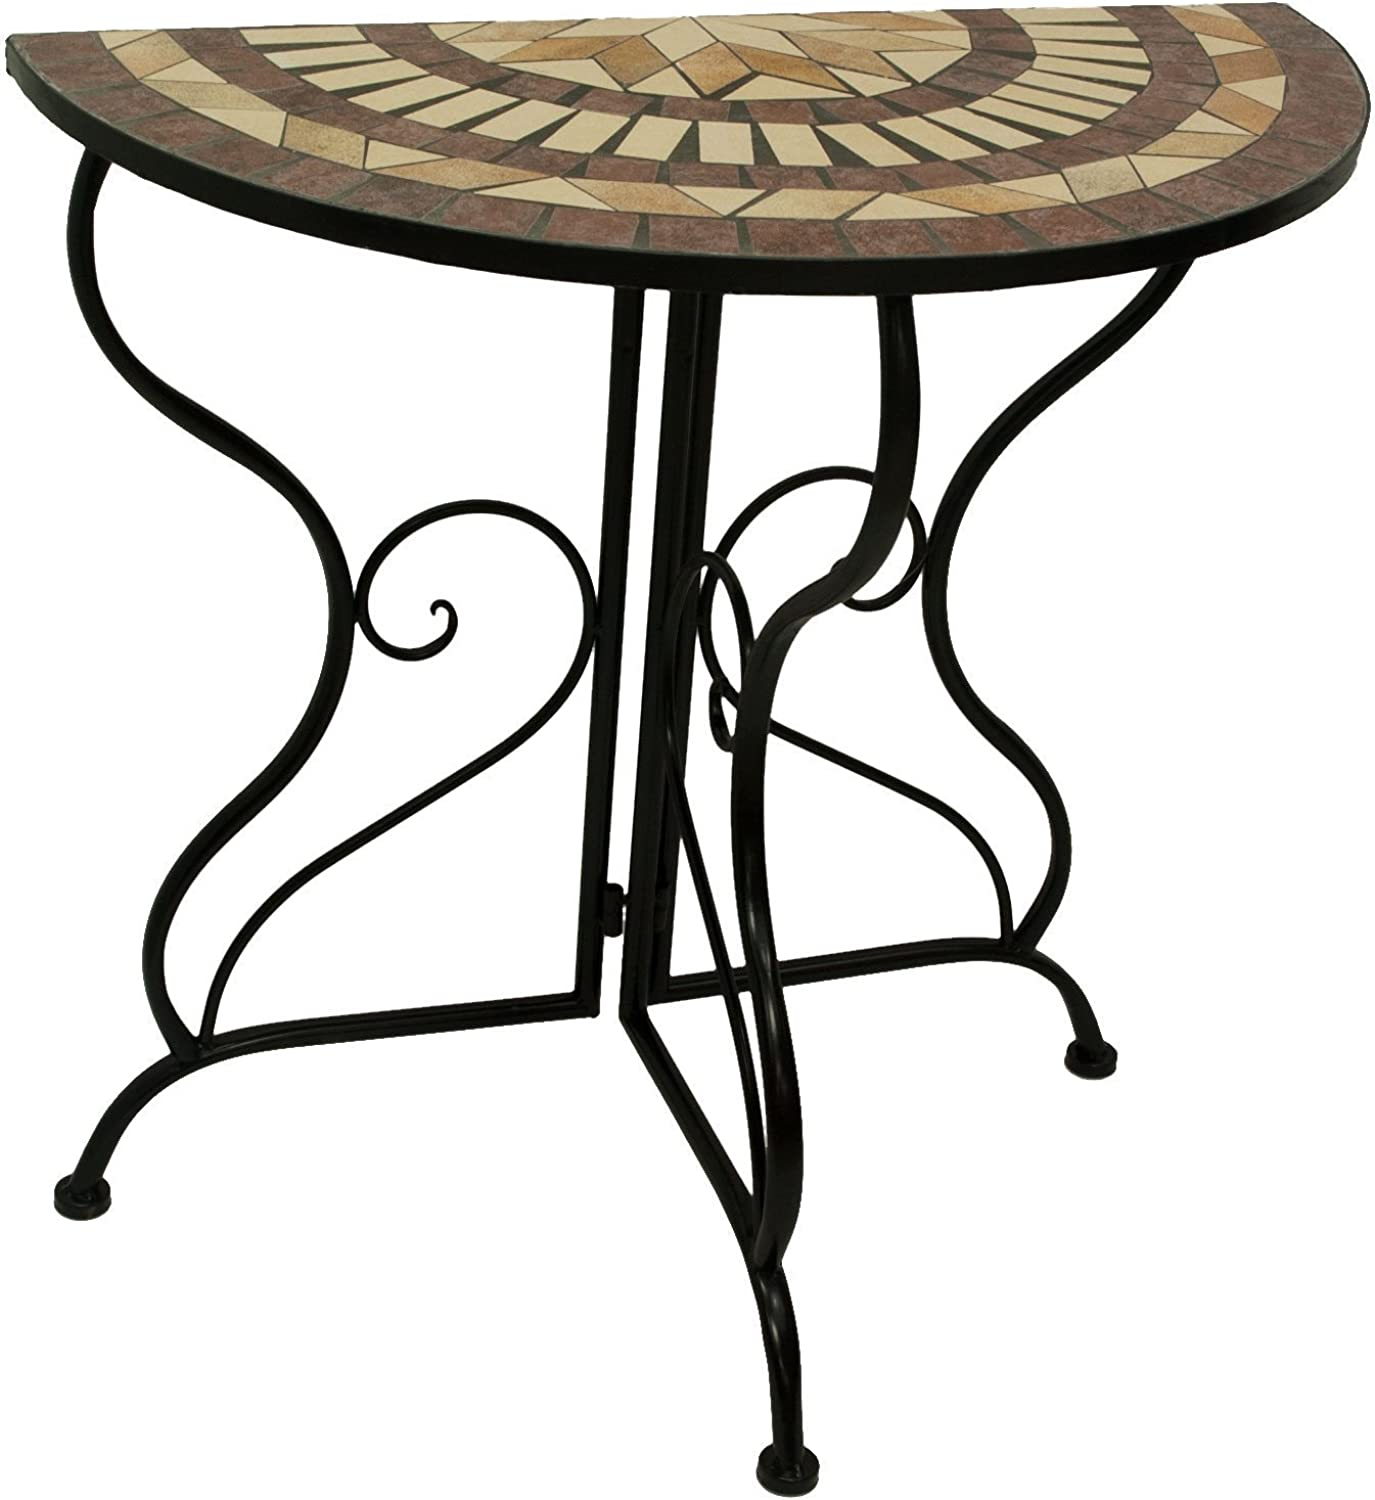 D64066 Console Mosaic Table Wrought Iron Legs